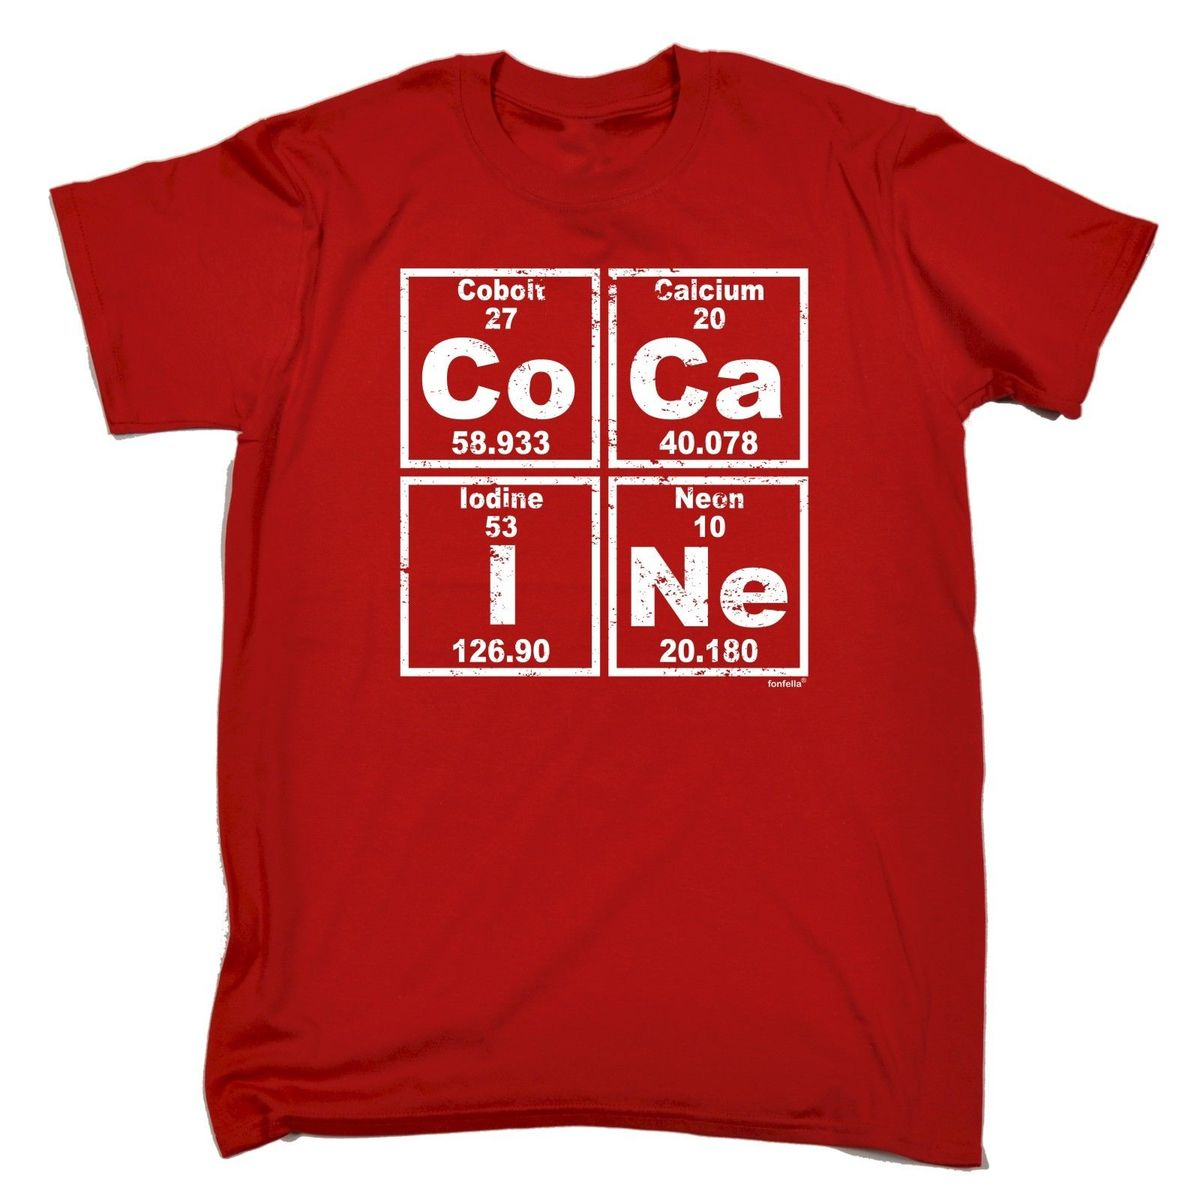 PERIODIC TABLE T-SHIRT tee retro escobar pablo funny birthday gift Fashion T-Shirt Men Clothing High Quality T Shirt